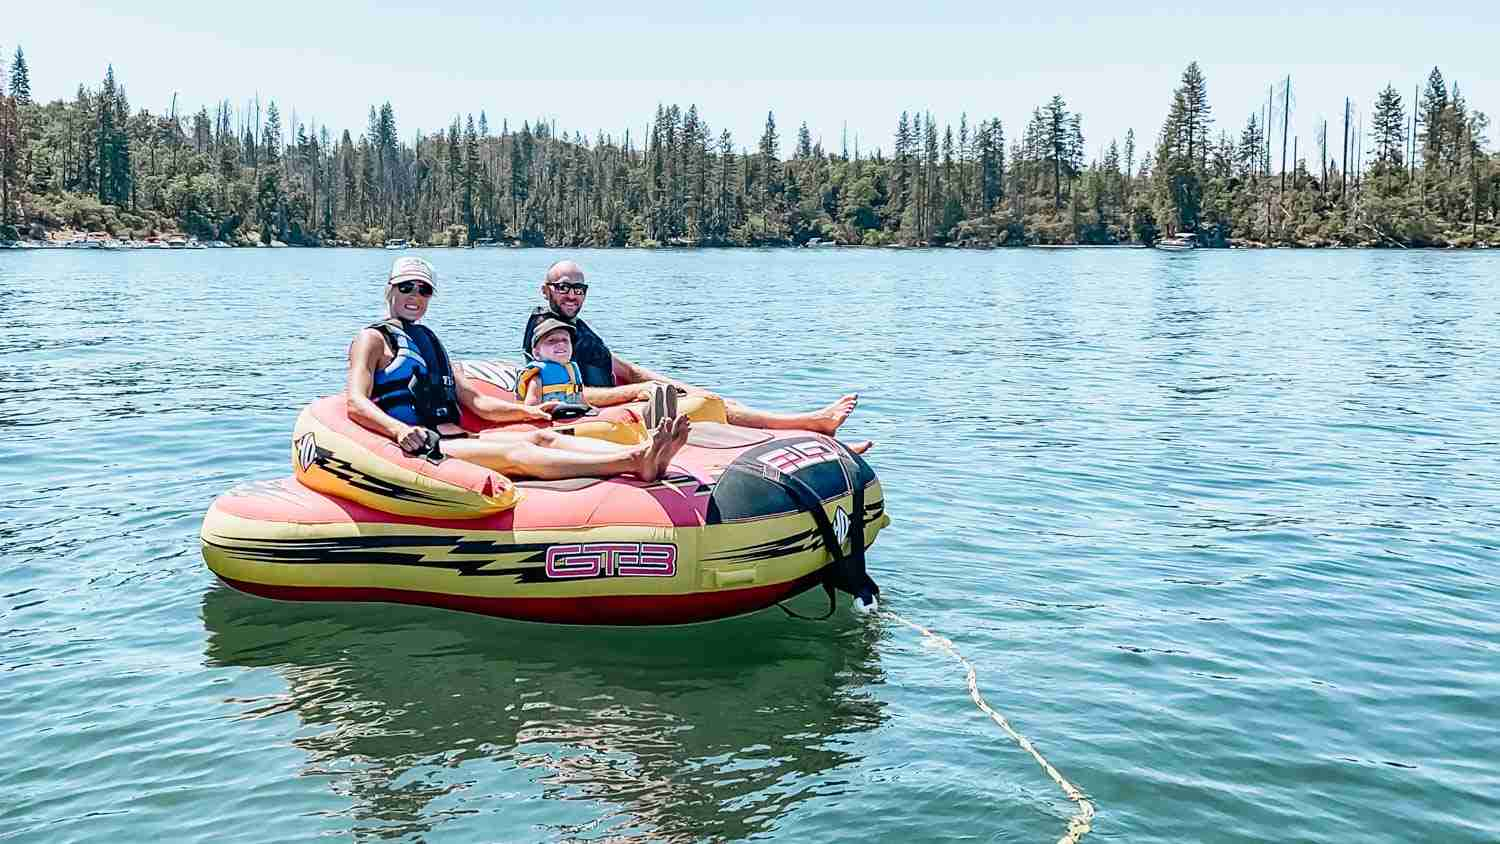 Family on tube on water on Bass Lake California